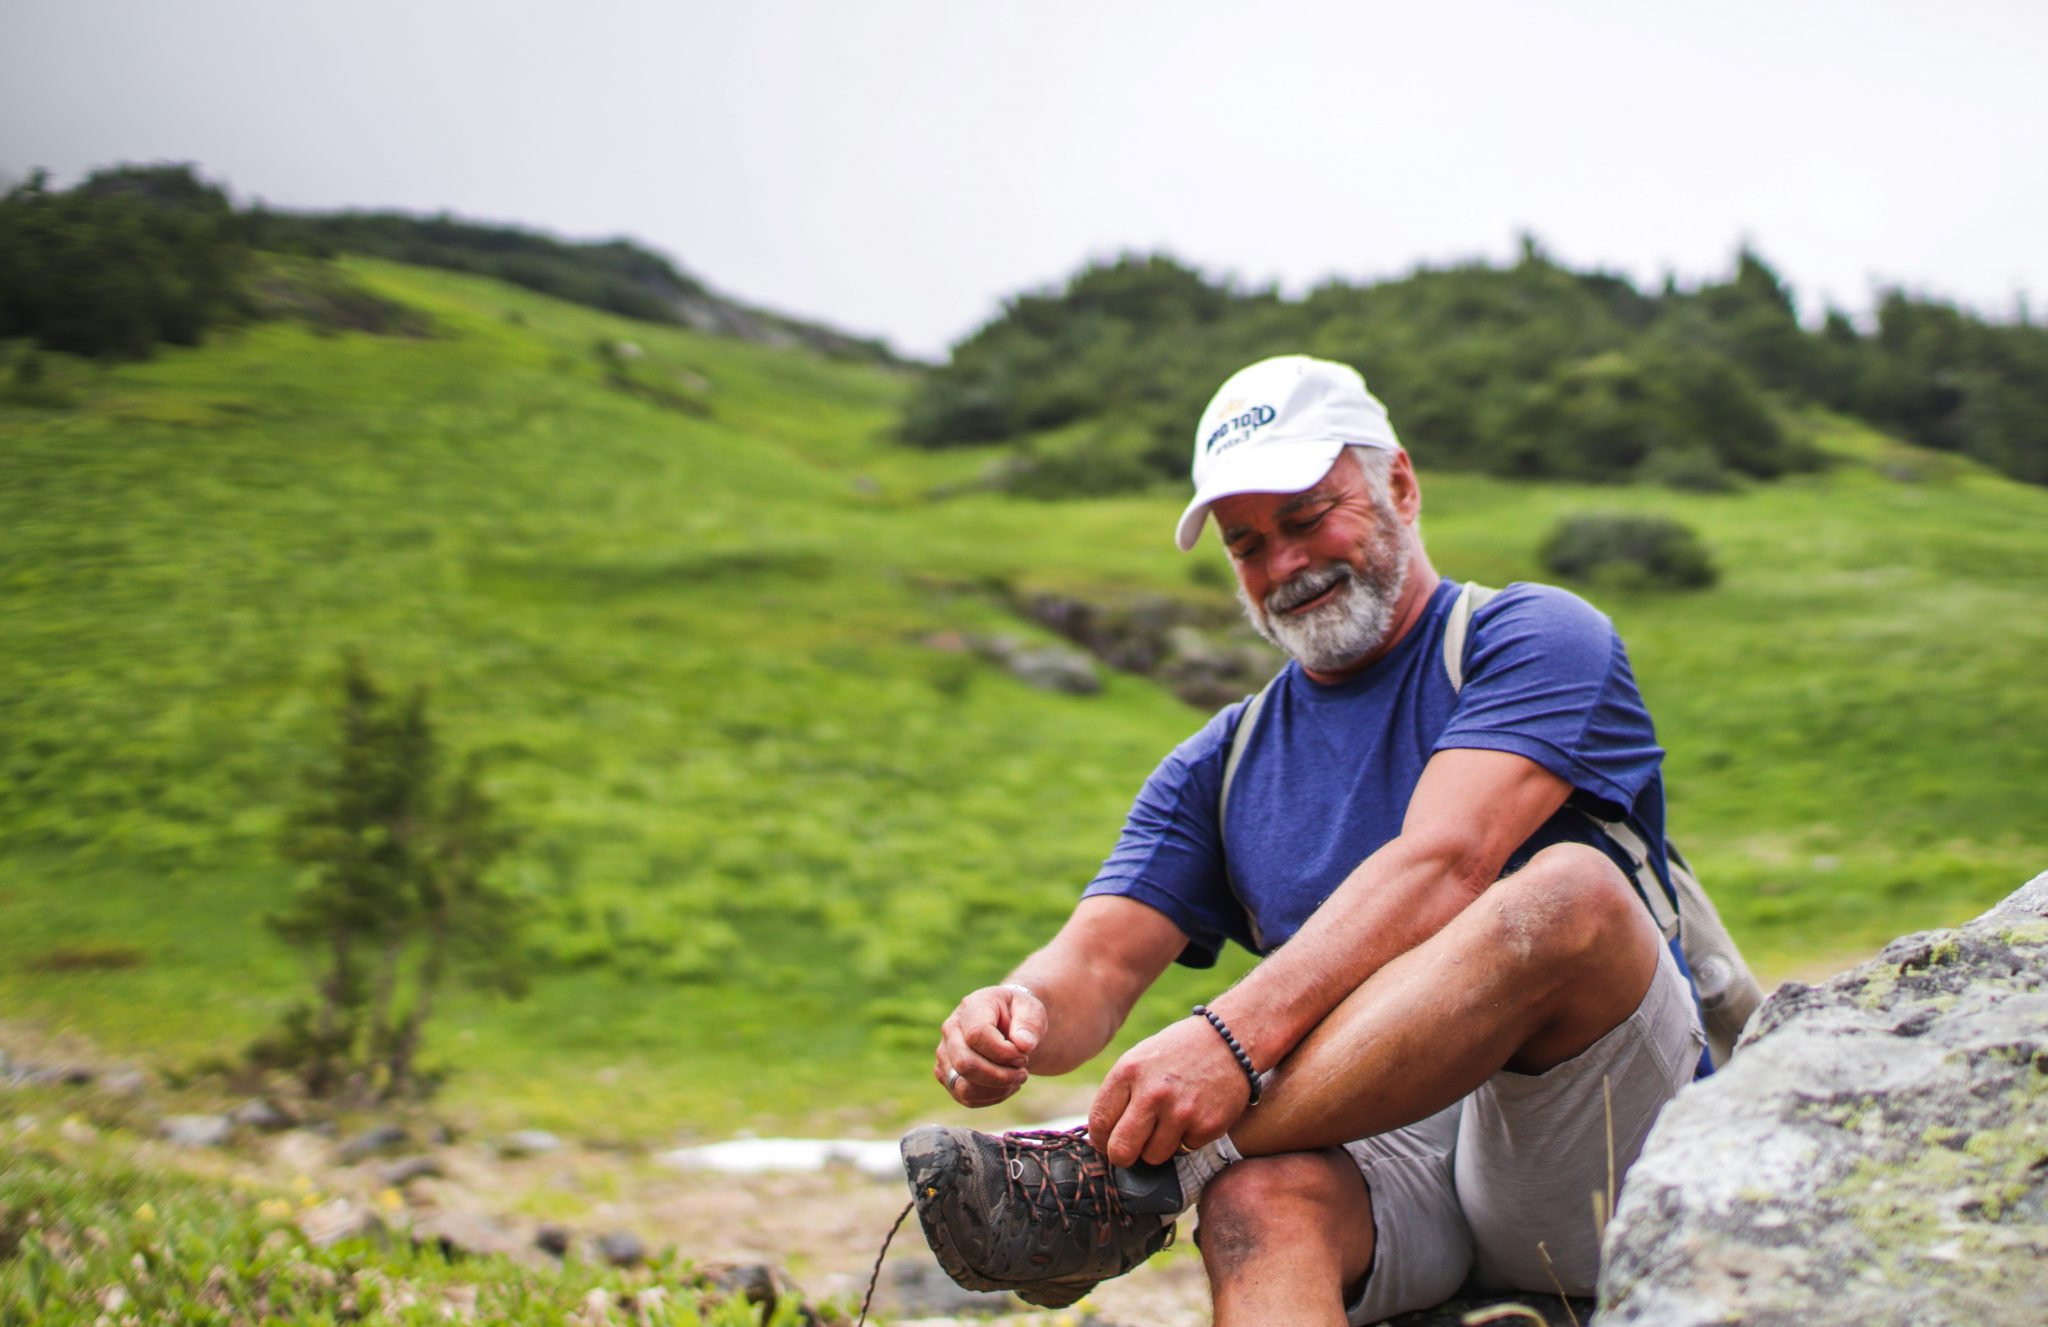 An older man on a hike in the hills, sits to tie his boot lace